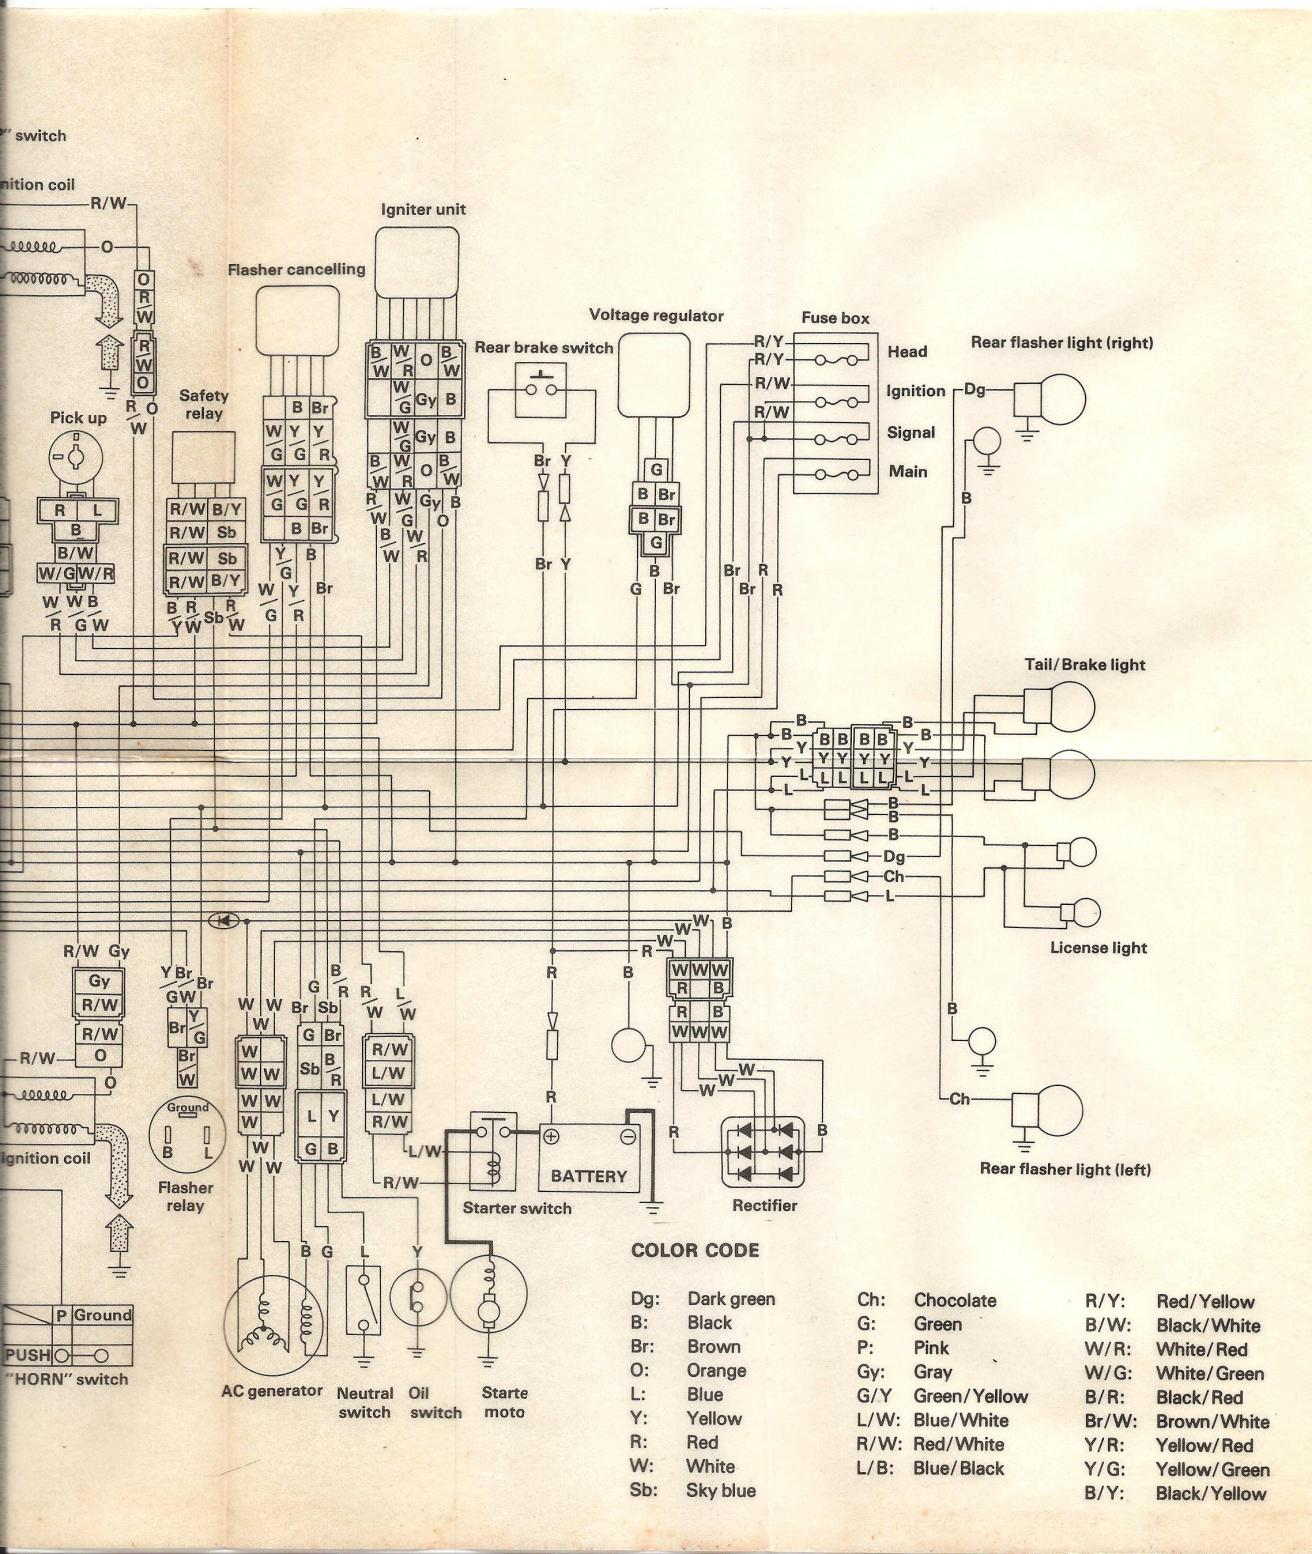 Simple Motorcycle Wiring Diagram For Choppers And Cafe Racers - Collection